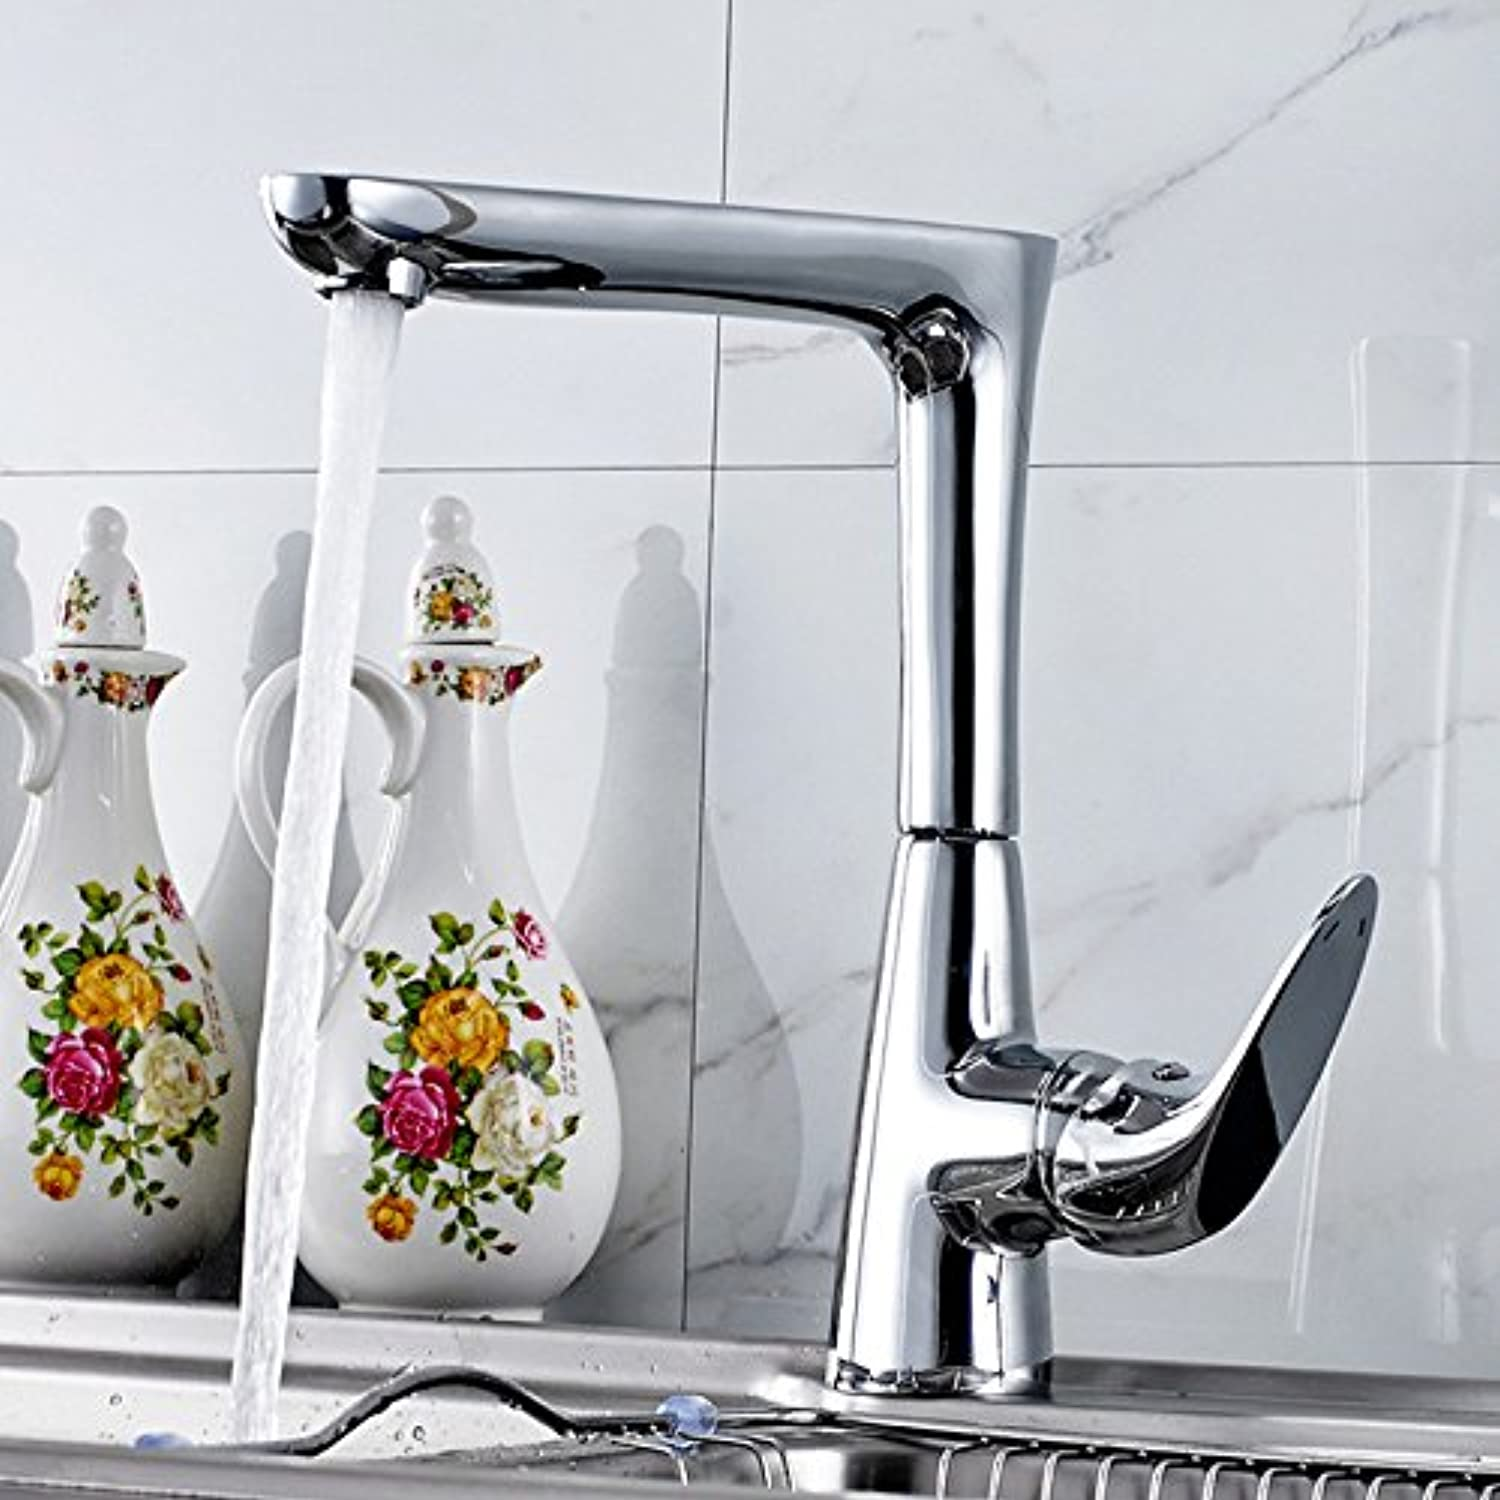 Commercial Single Lever Pull Down Kitchen Sink Faucet Brass Constructed Sink Faucet Kitchen Full Copper Plating Chrome Kitchen Sink Faucet Hot and Cold Water Mixing redating Modern Mixing Faucet